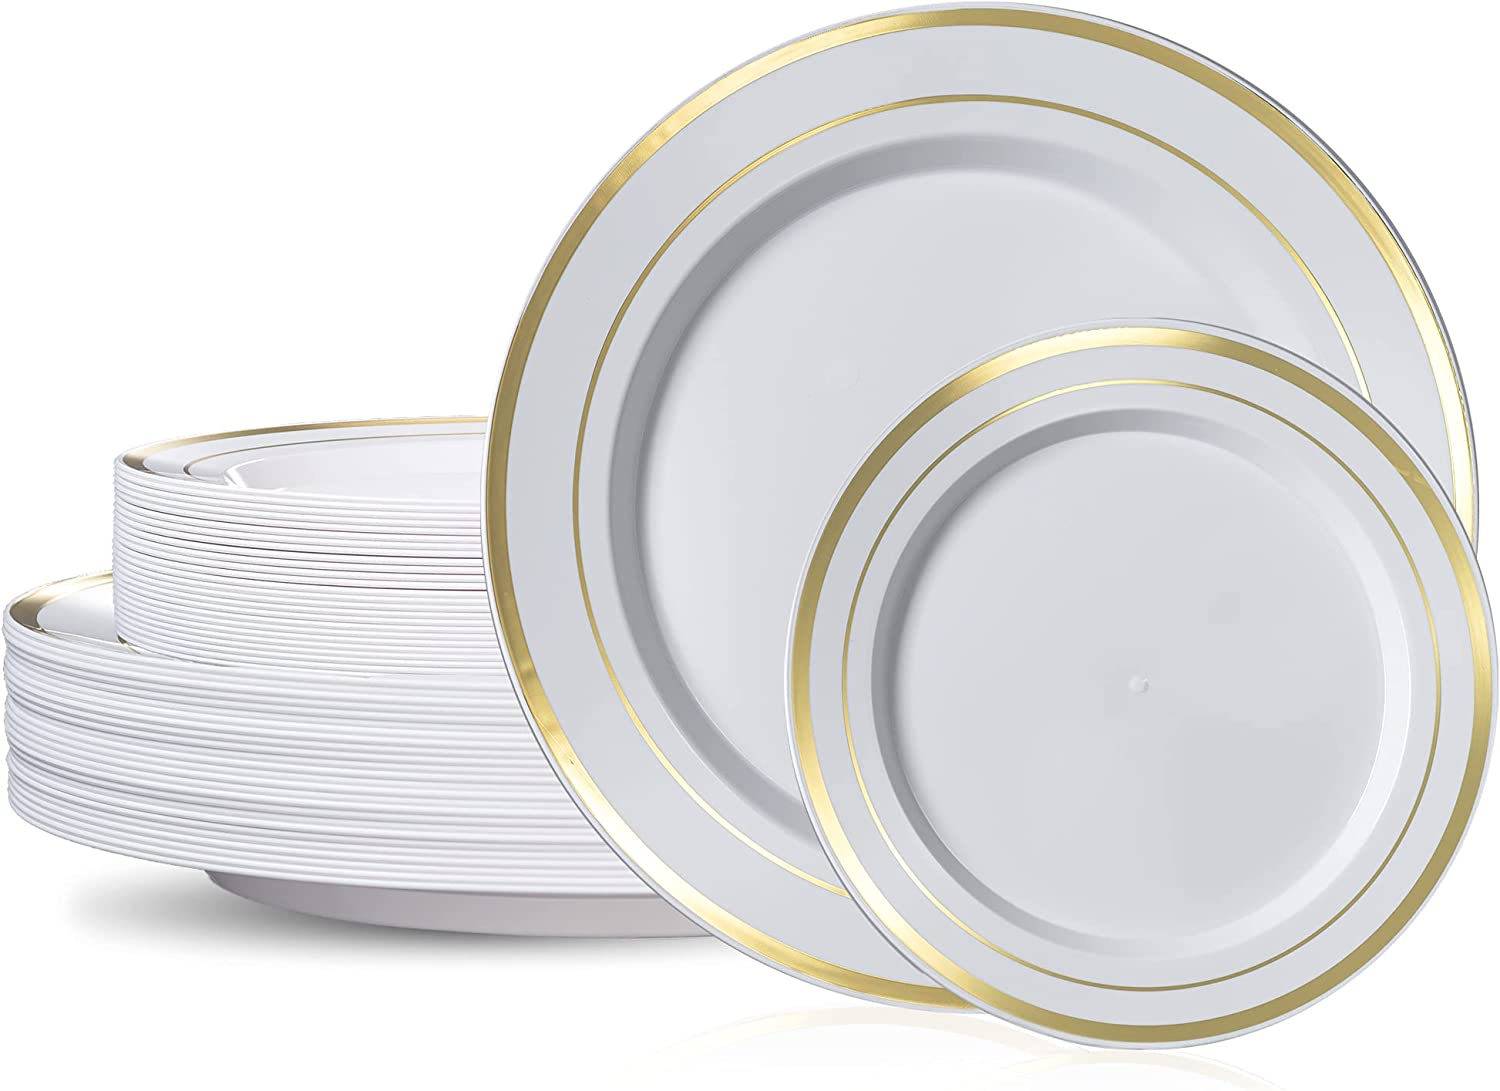 50 Piece Gold Plastic Plates - 25 Dinner Plates and 25 Salad Plates | Plastic Plates For Parties | Gold Plates | Party Plates | Wedding Plates | Disposable Plates For Party